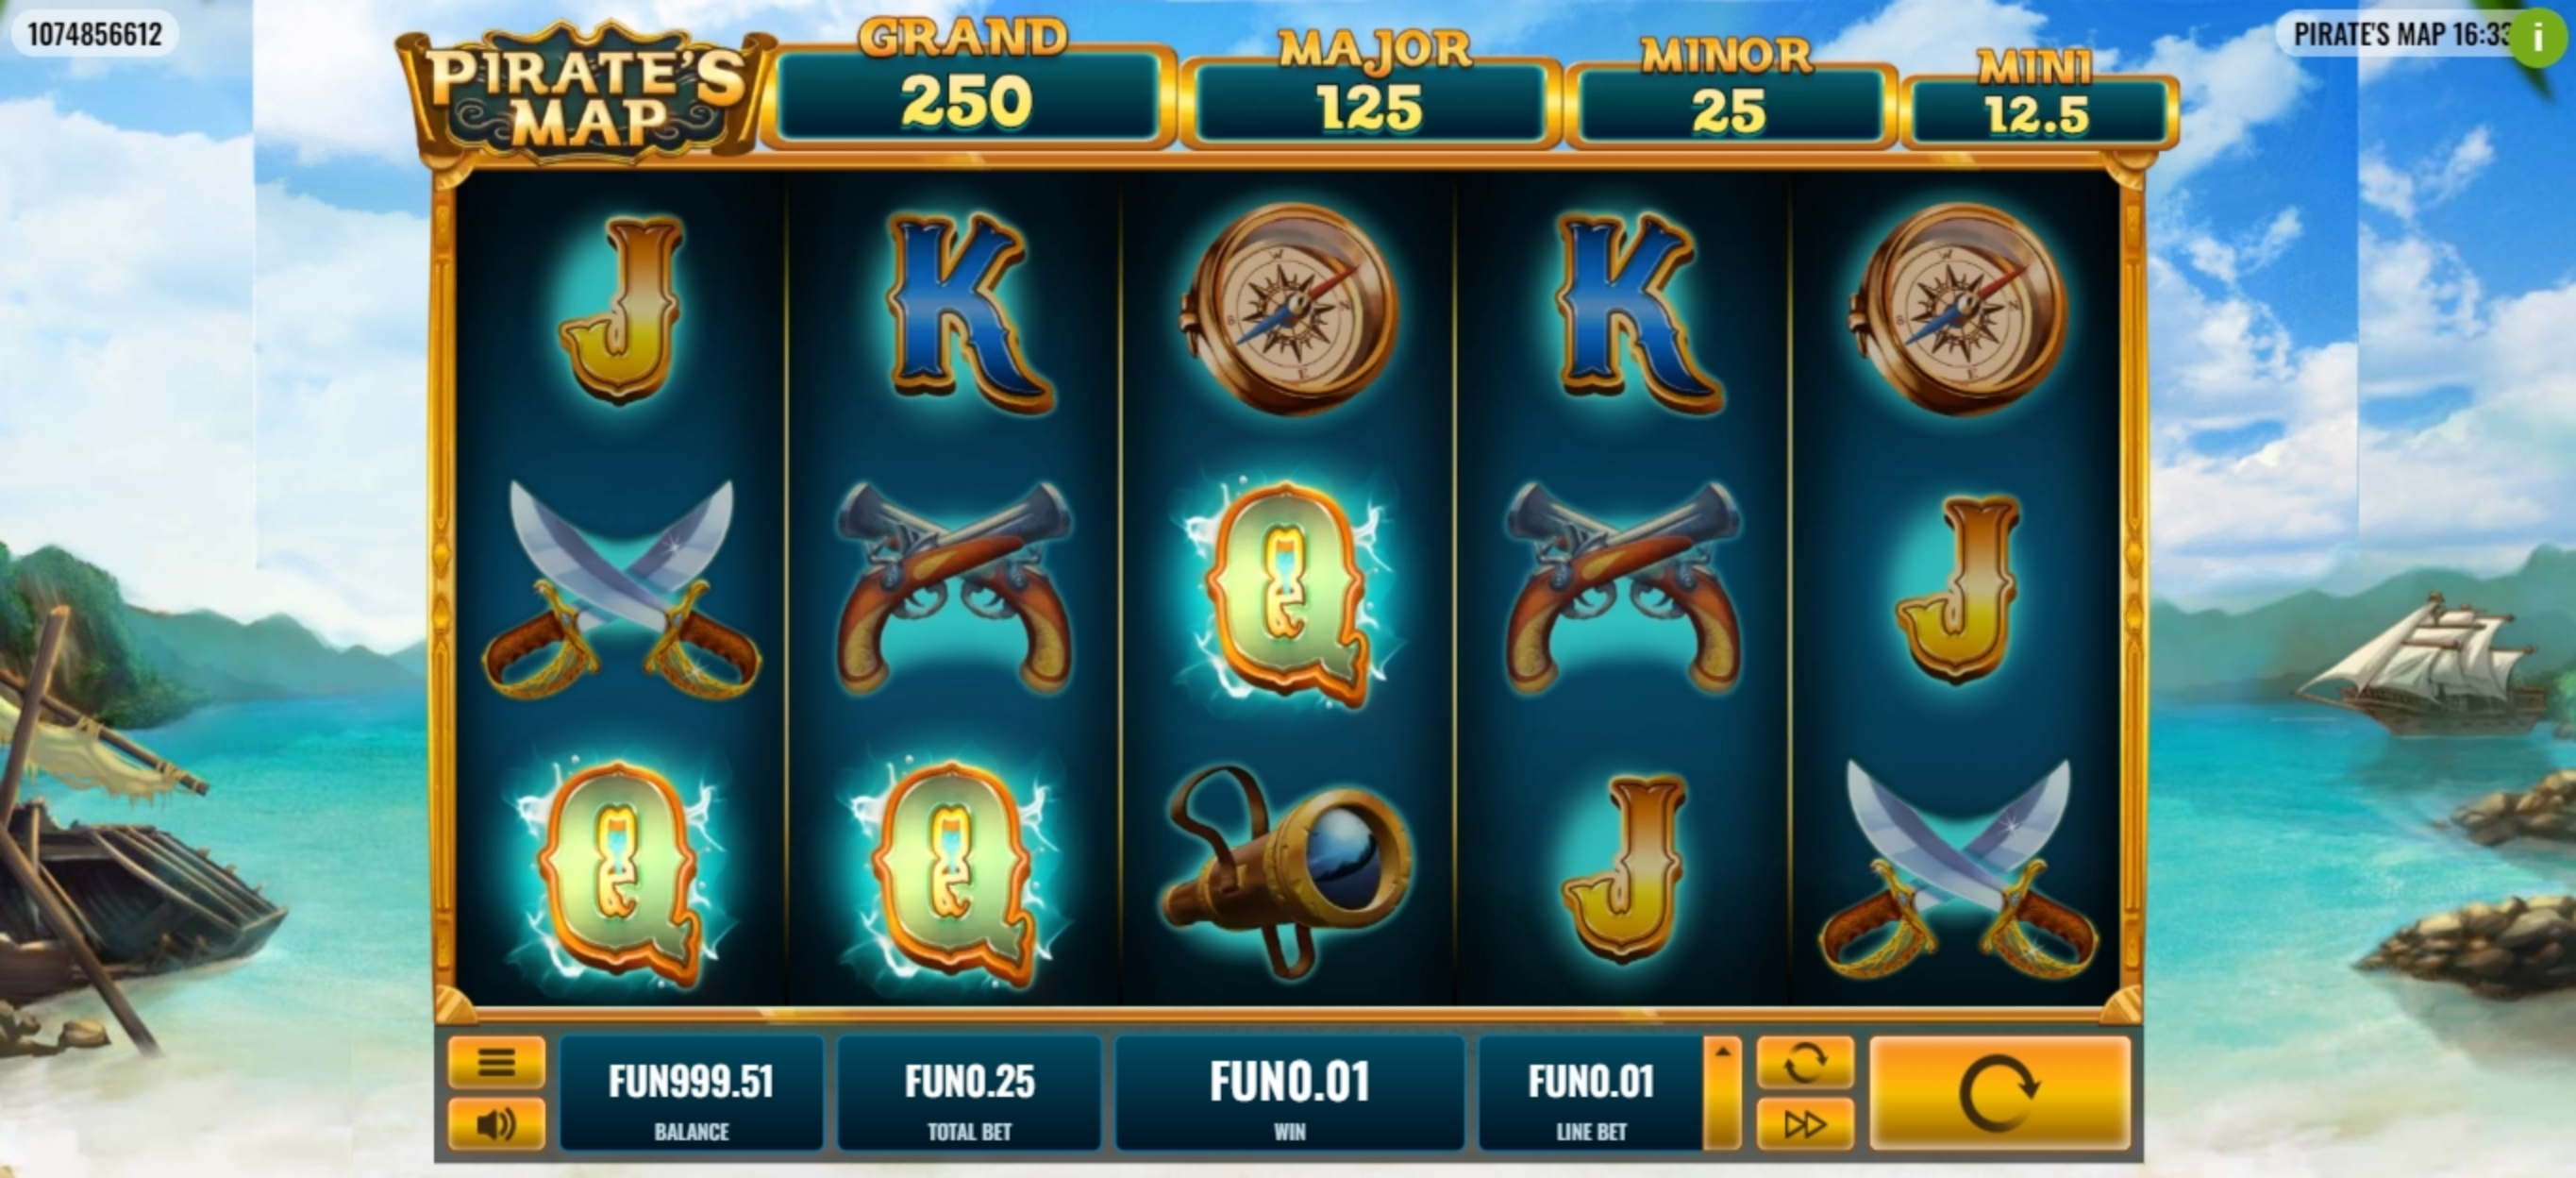 Win Money in Pirate's Map Free Slot Game by Platipus